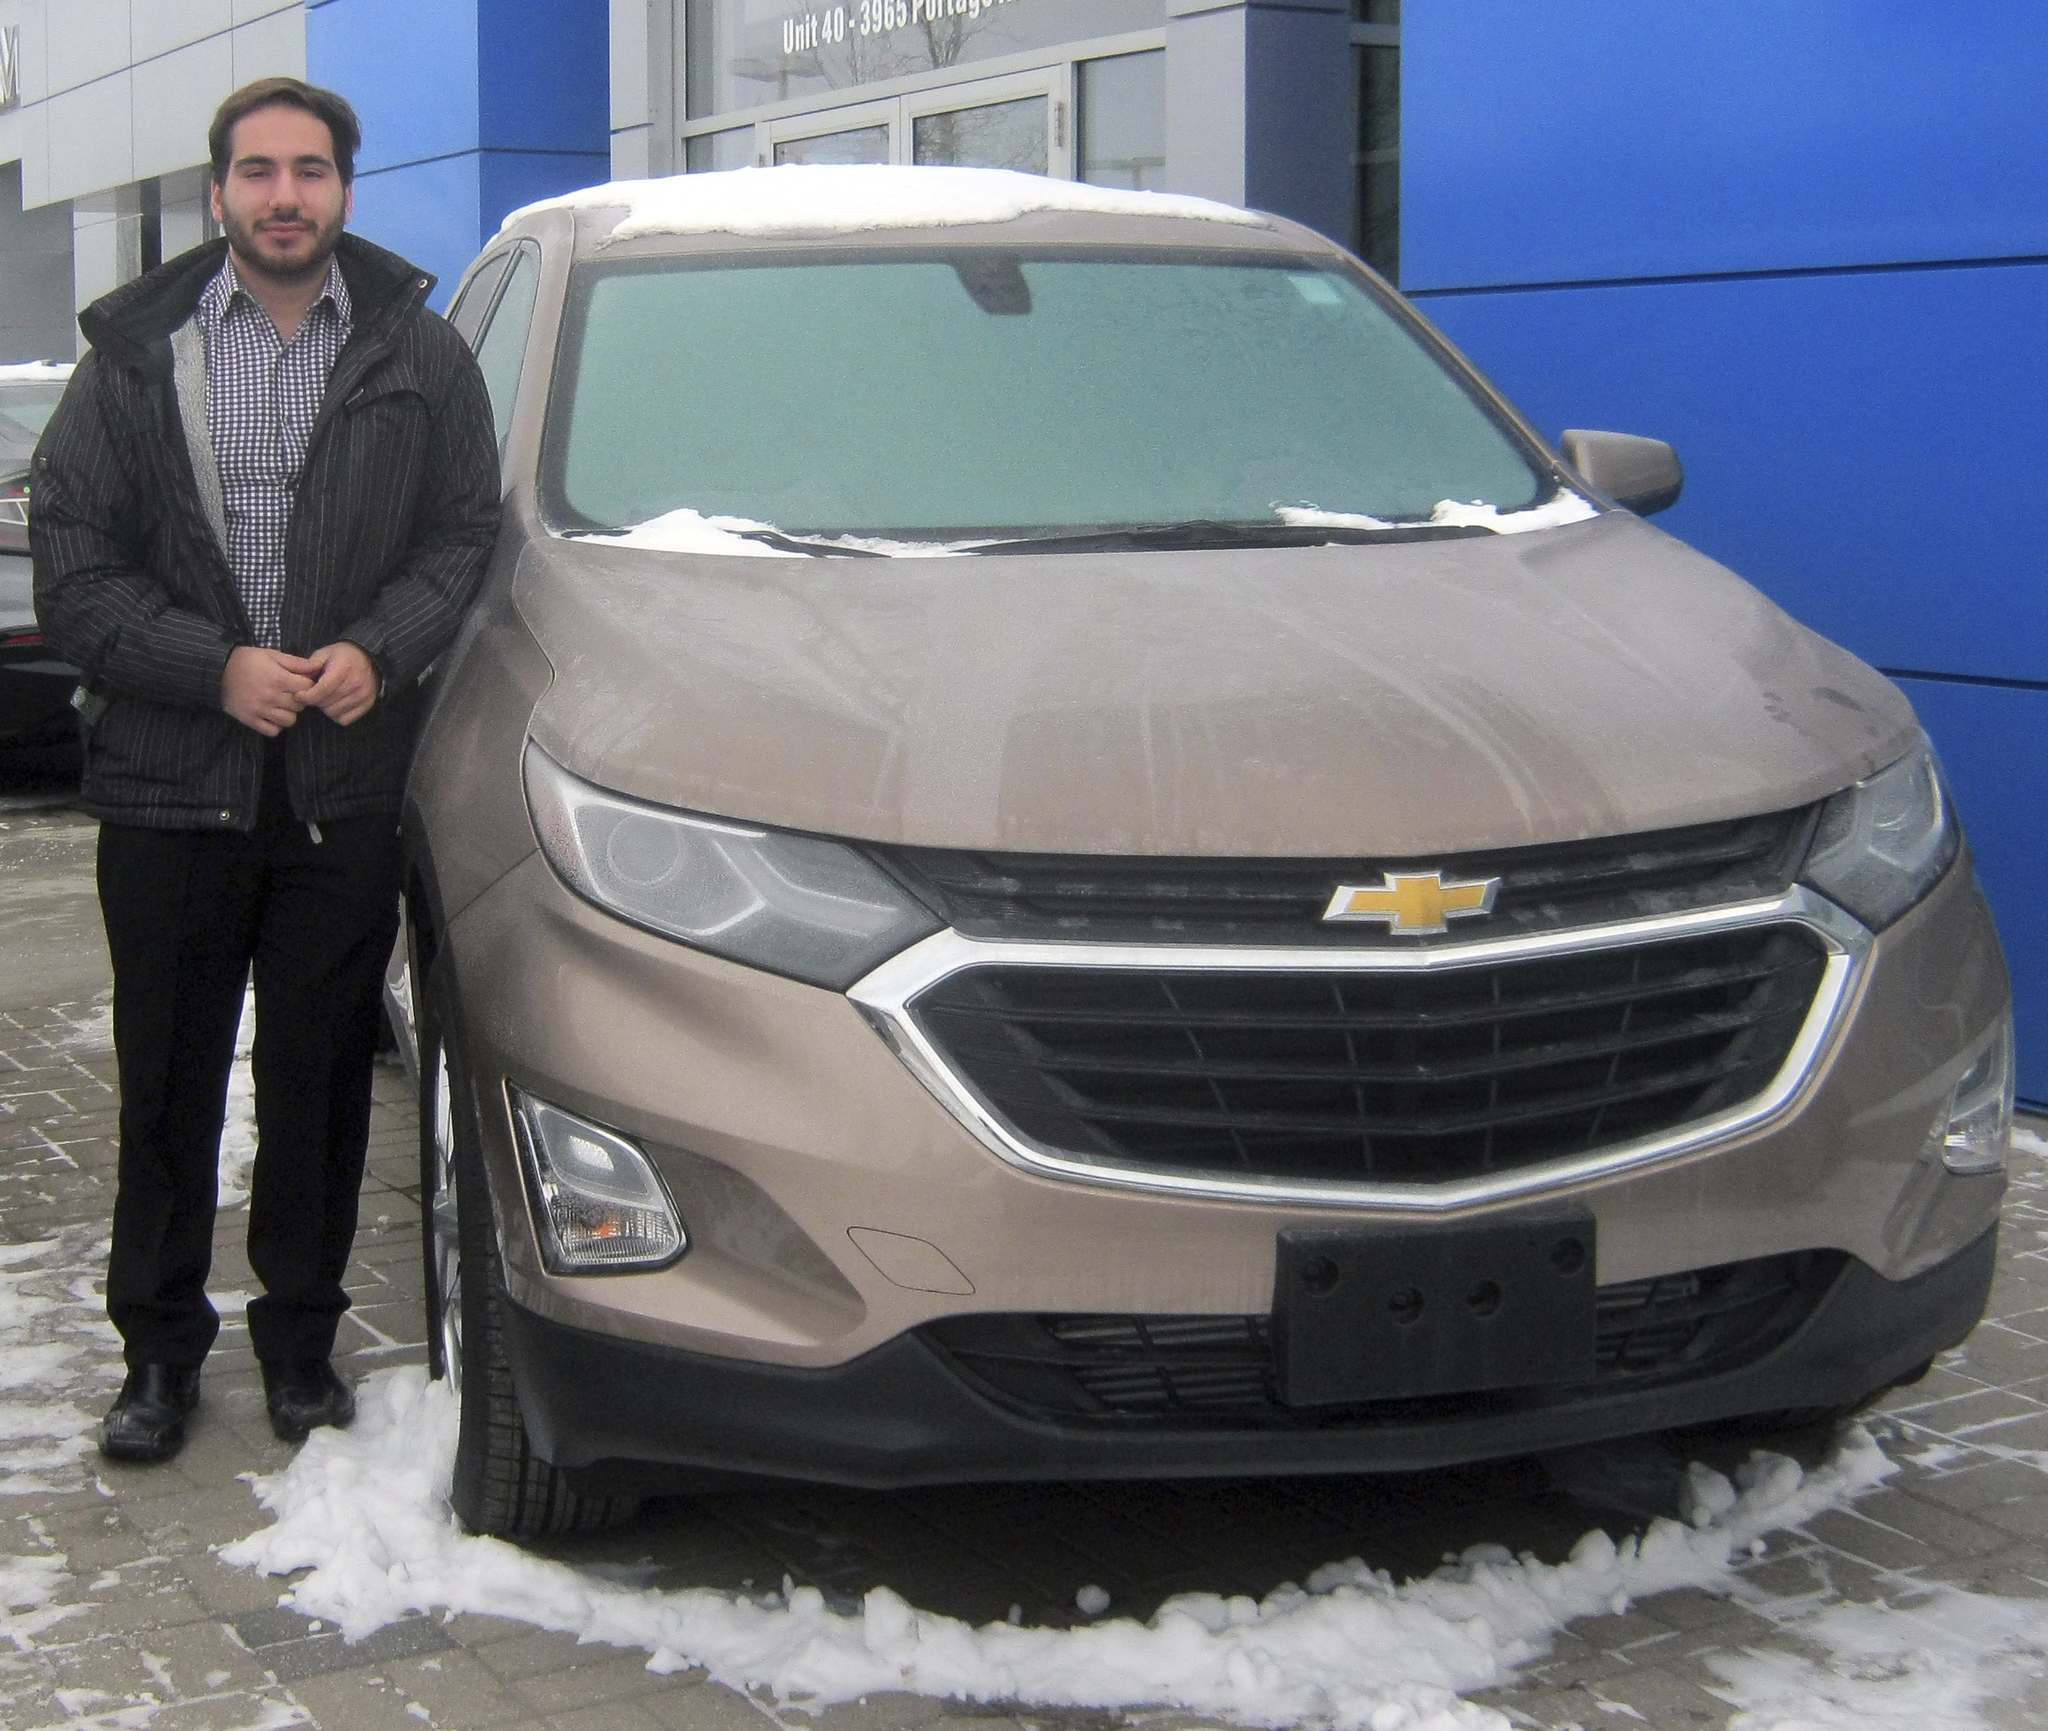 Myron Love / Winnipeg Free PressMatthew Russo of Birchwood Chevrolet Buick GMC